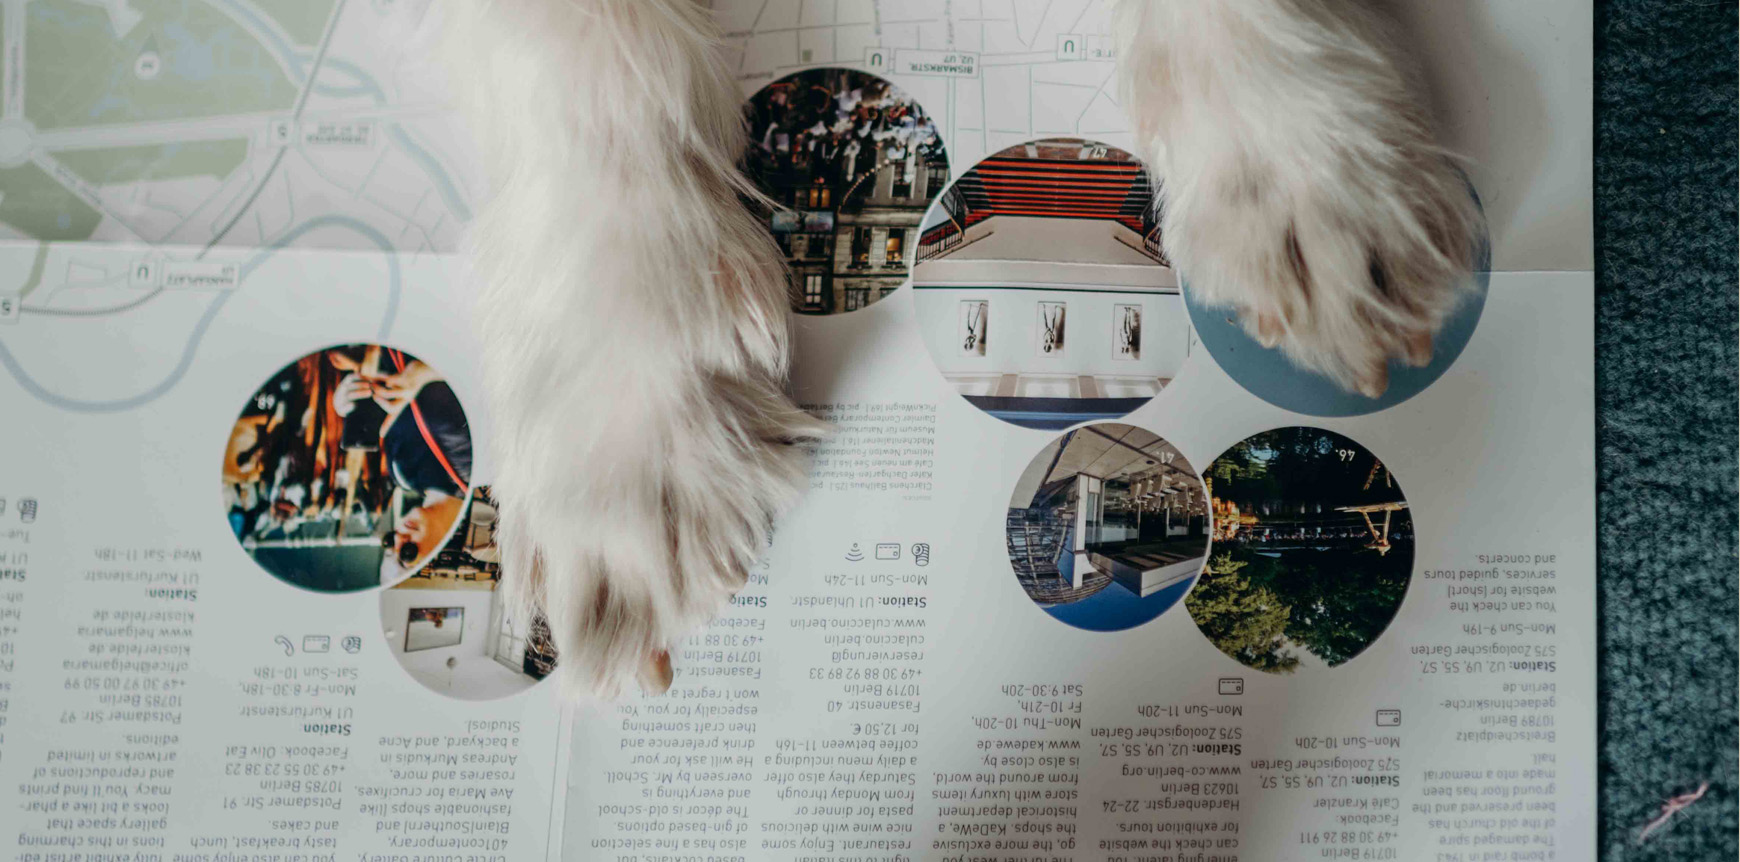 Dog-friendly Berlin map by walk this way  - pic by Briana Moore